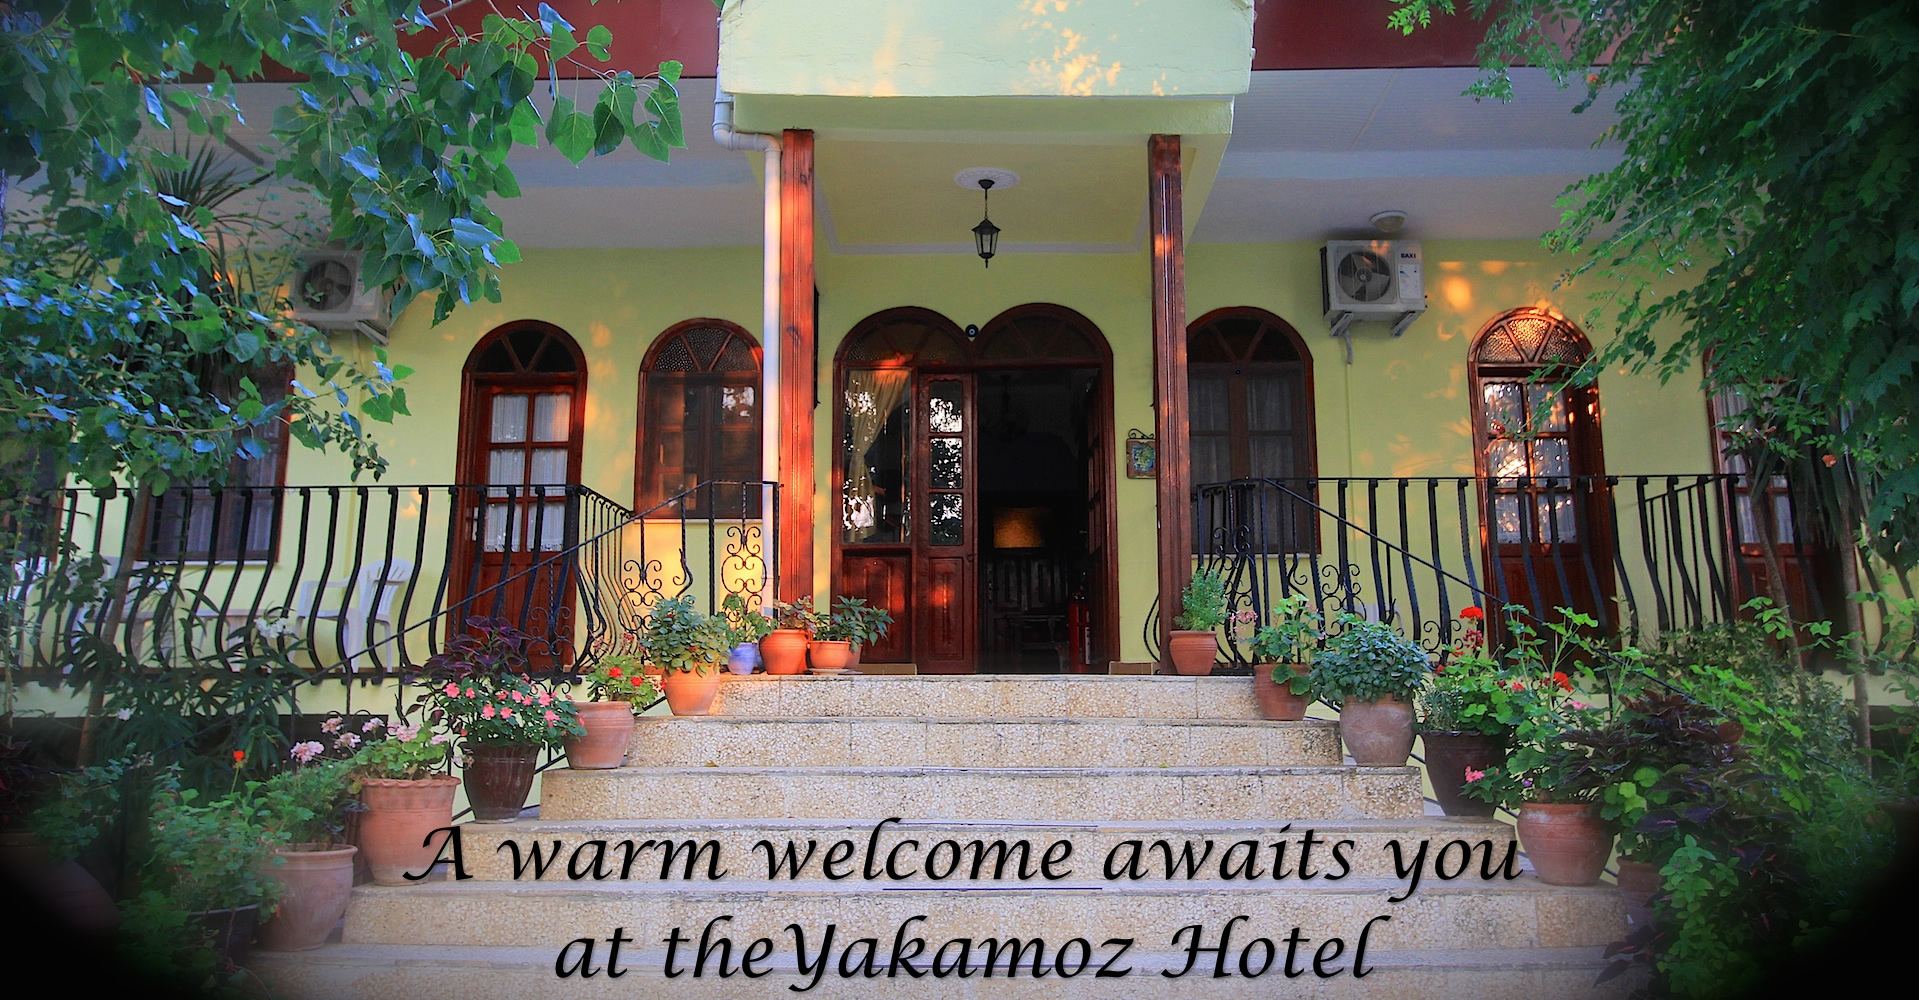 A warm welcome awaits you at the Yakamoz Hotel